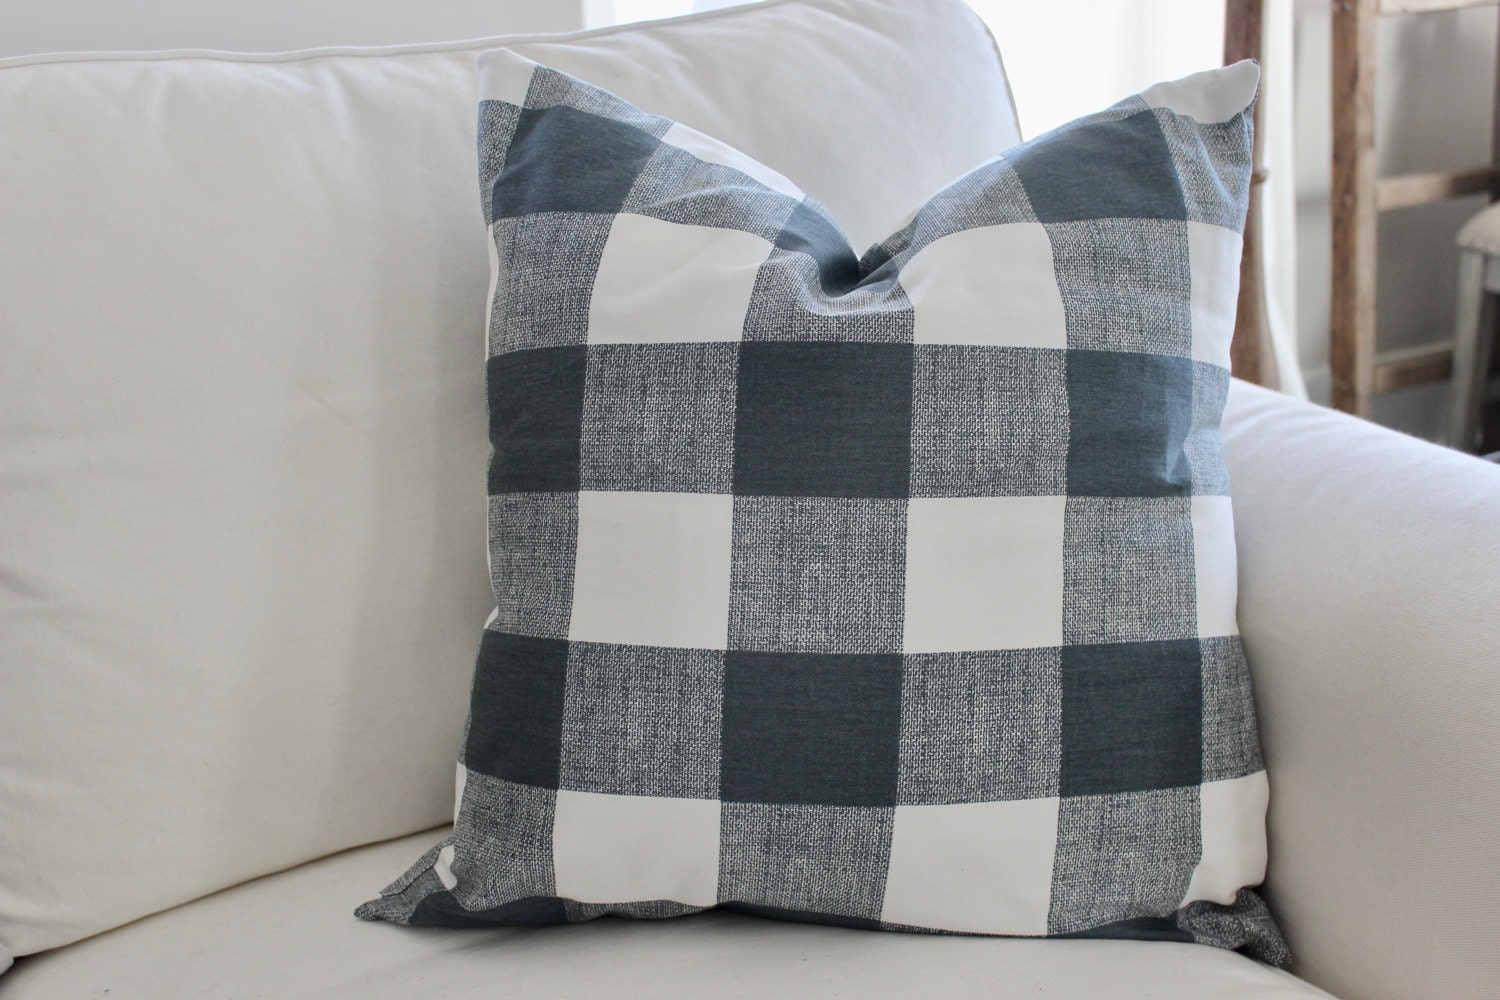 Buffalo Check Pillow Covers Plaid Pillows. Check Pillow